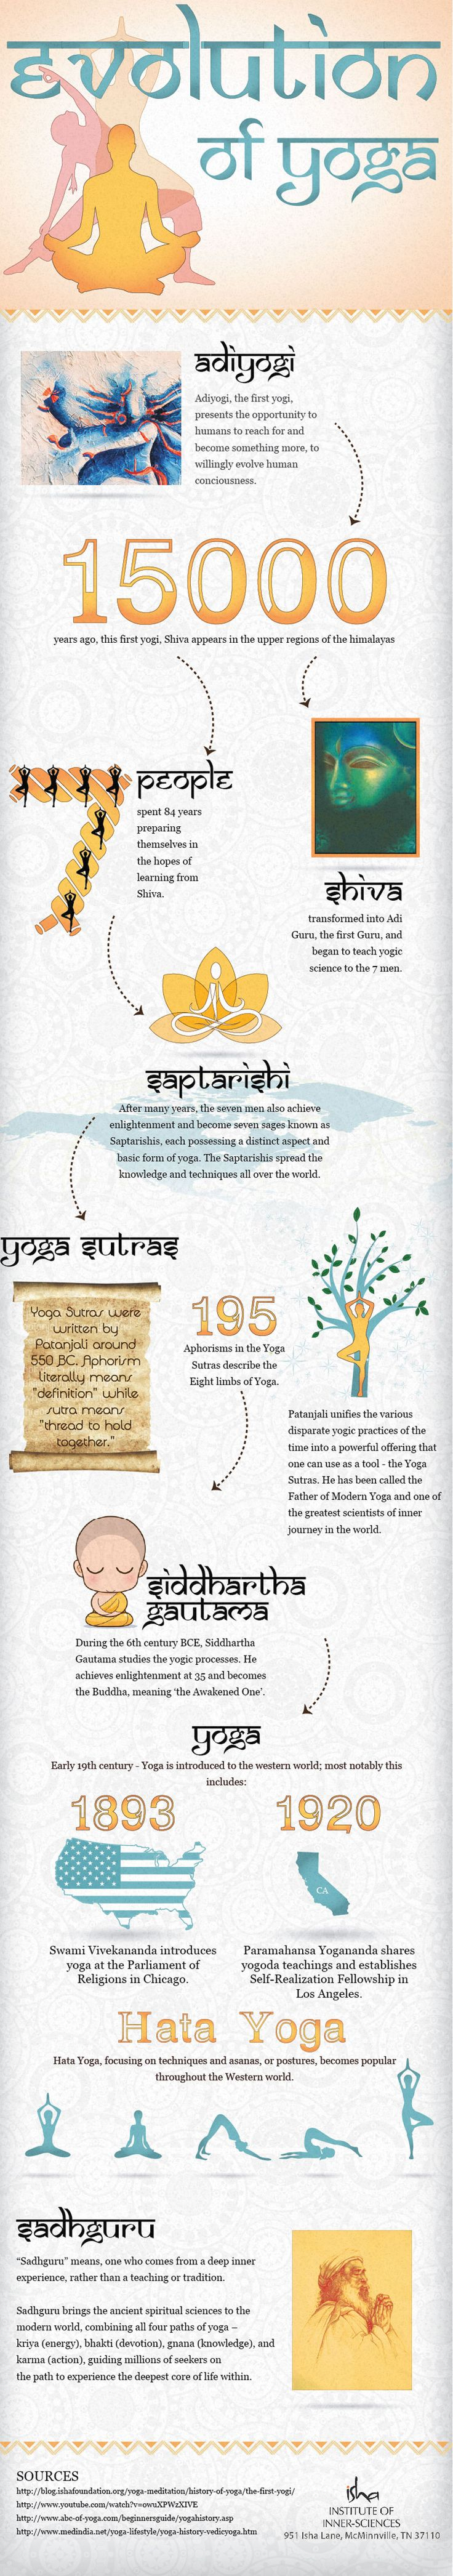 Hundreds of millions of people practice yoga across the globe, but do we know where it comes from? Find out more at http://bookretreats.com/blog/patanjali-didnt-create-yoga-meet-infographic/